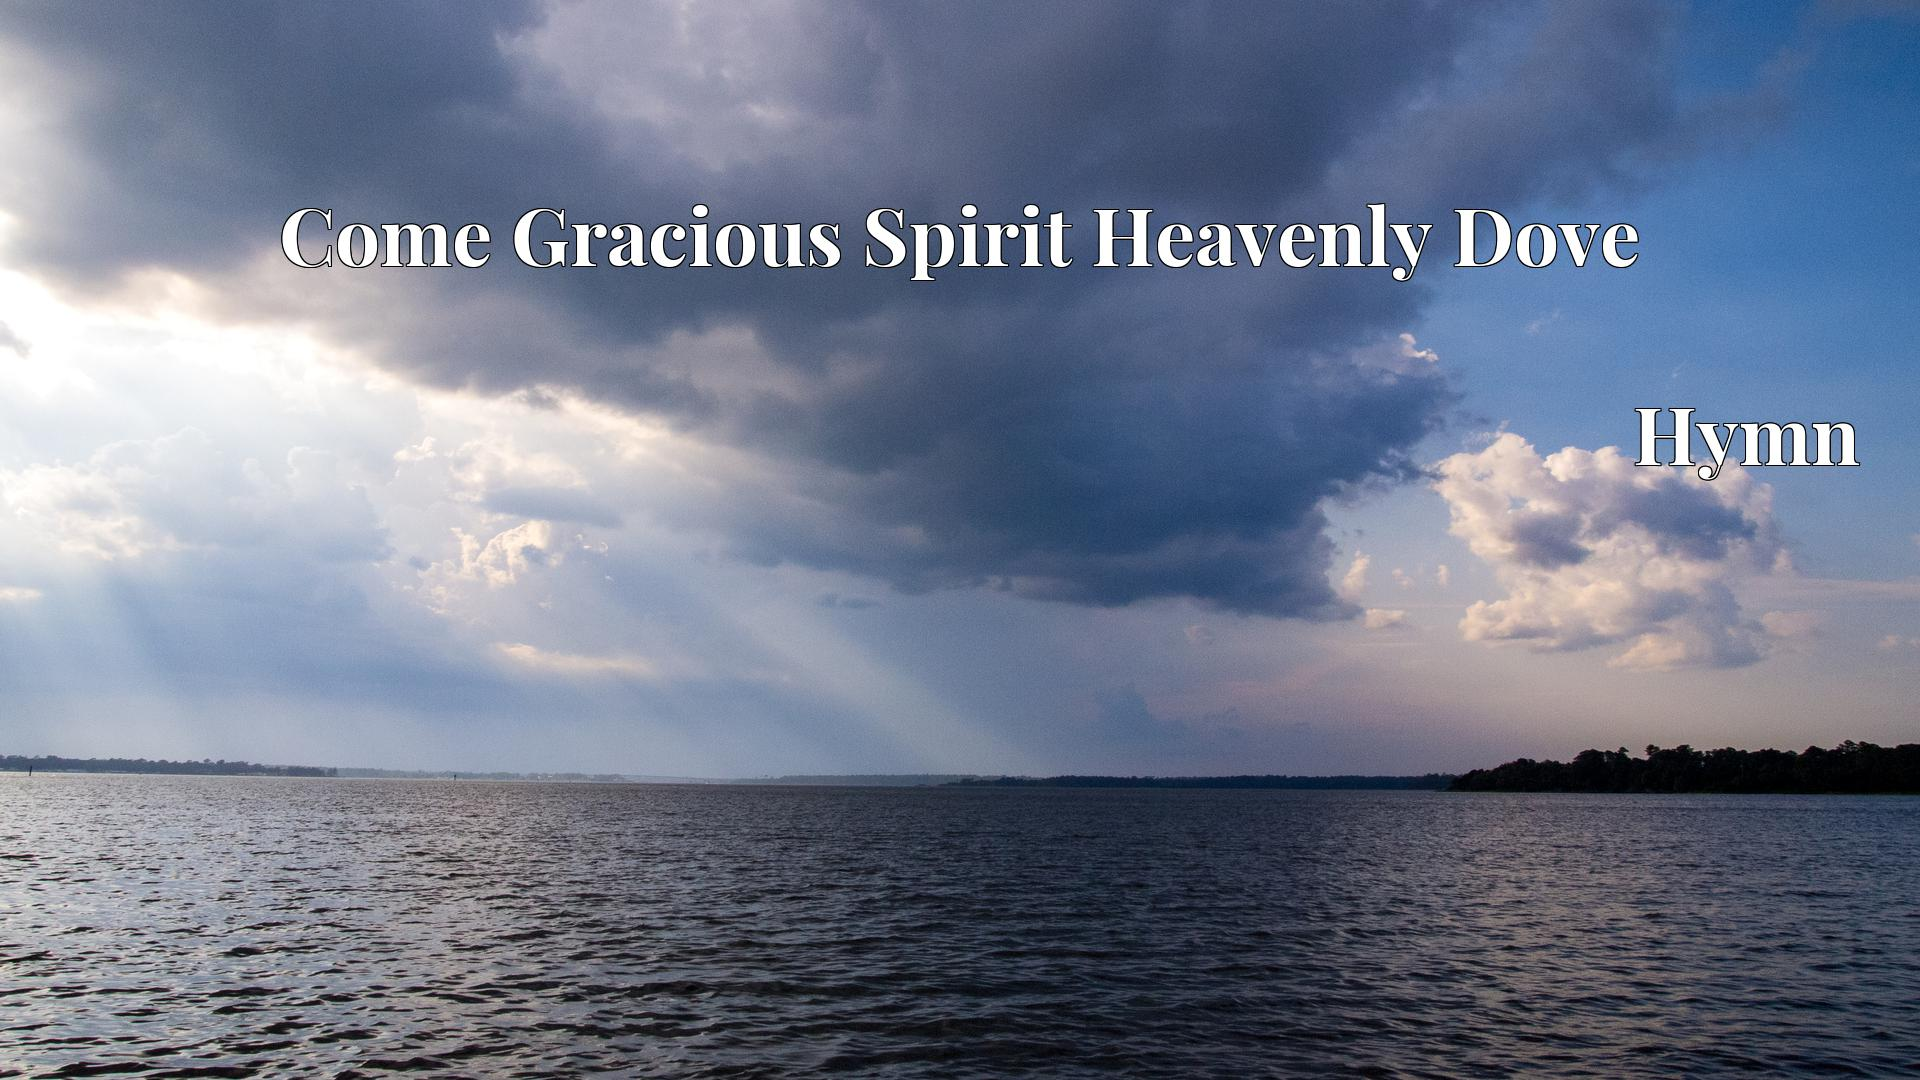 Come Gracious Spirit Heavenly Dove - Hymn